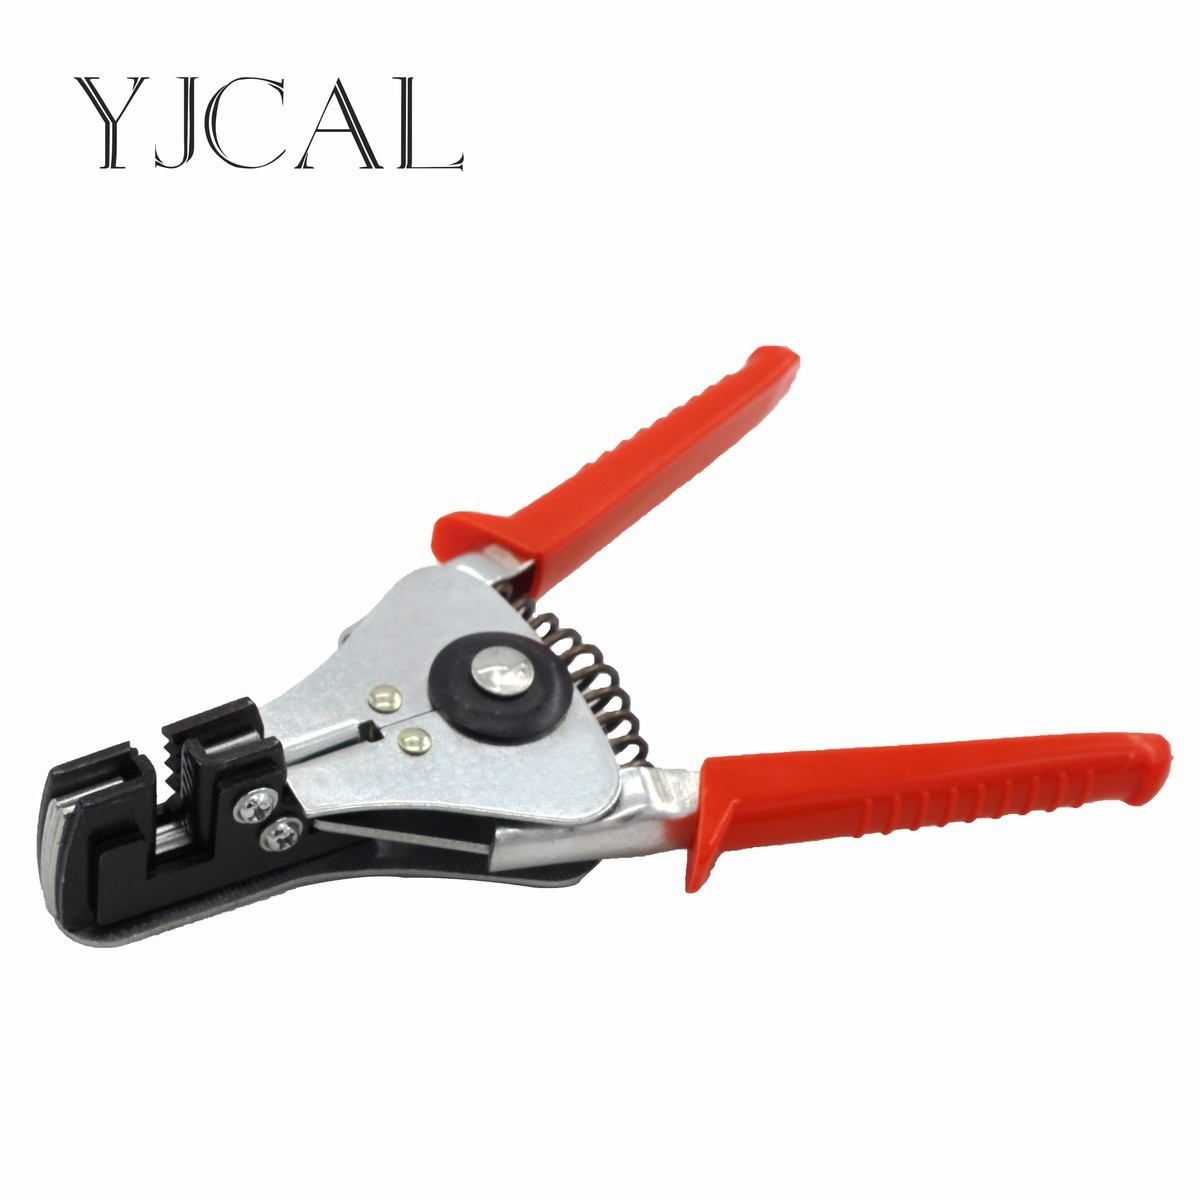 Automatic Stripping Pliers Wire Stripper Cutter Crimping Peeler Forceps Cable Tools Terminal Multifunctional Hand Tool pu leather car seat cover front and back set car cushion pad mat for nissan otti pixo pulsar primera pathfinder pino patrol